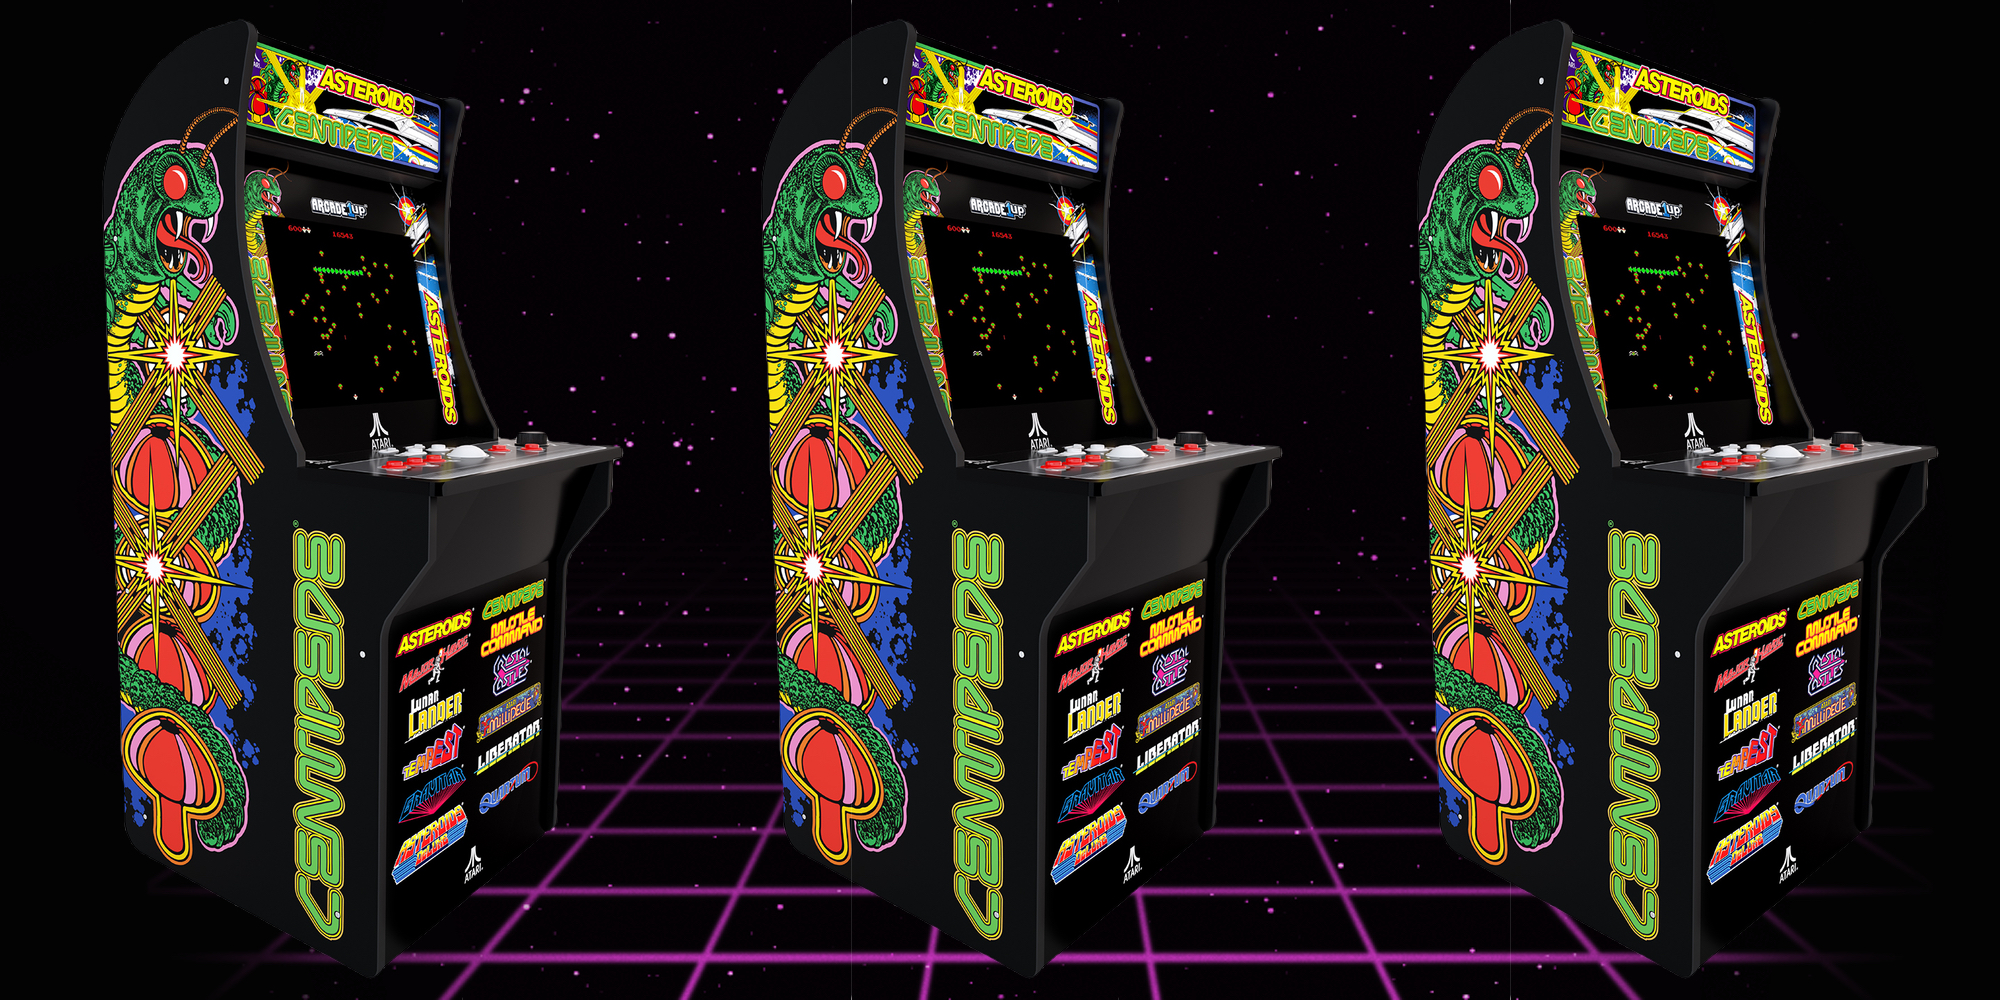 Arcade1Up's Deluxe Cabinet brings 12 retro classics to your game room for $280 (Reg. $400)